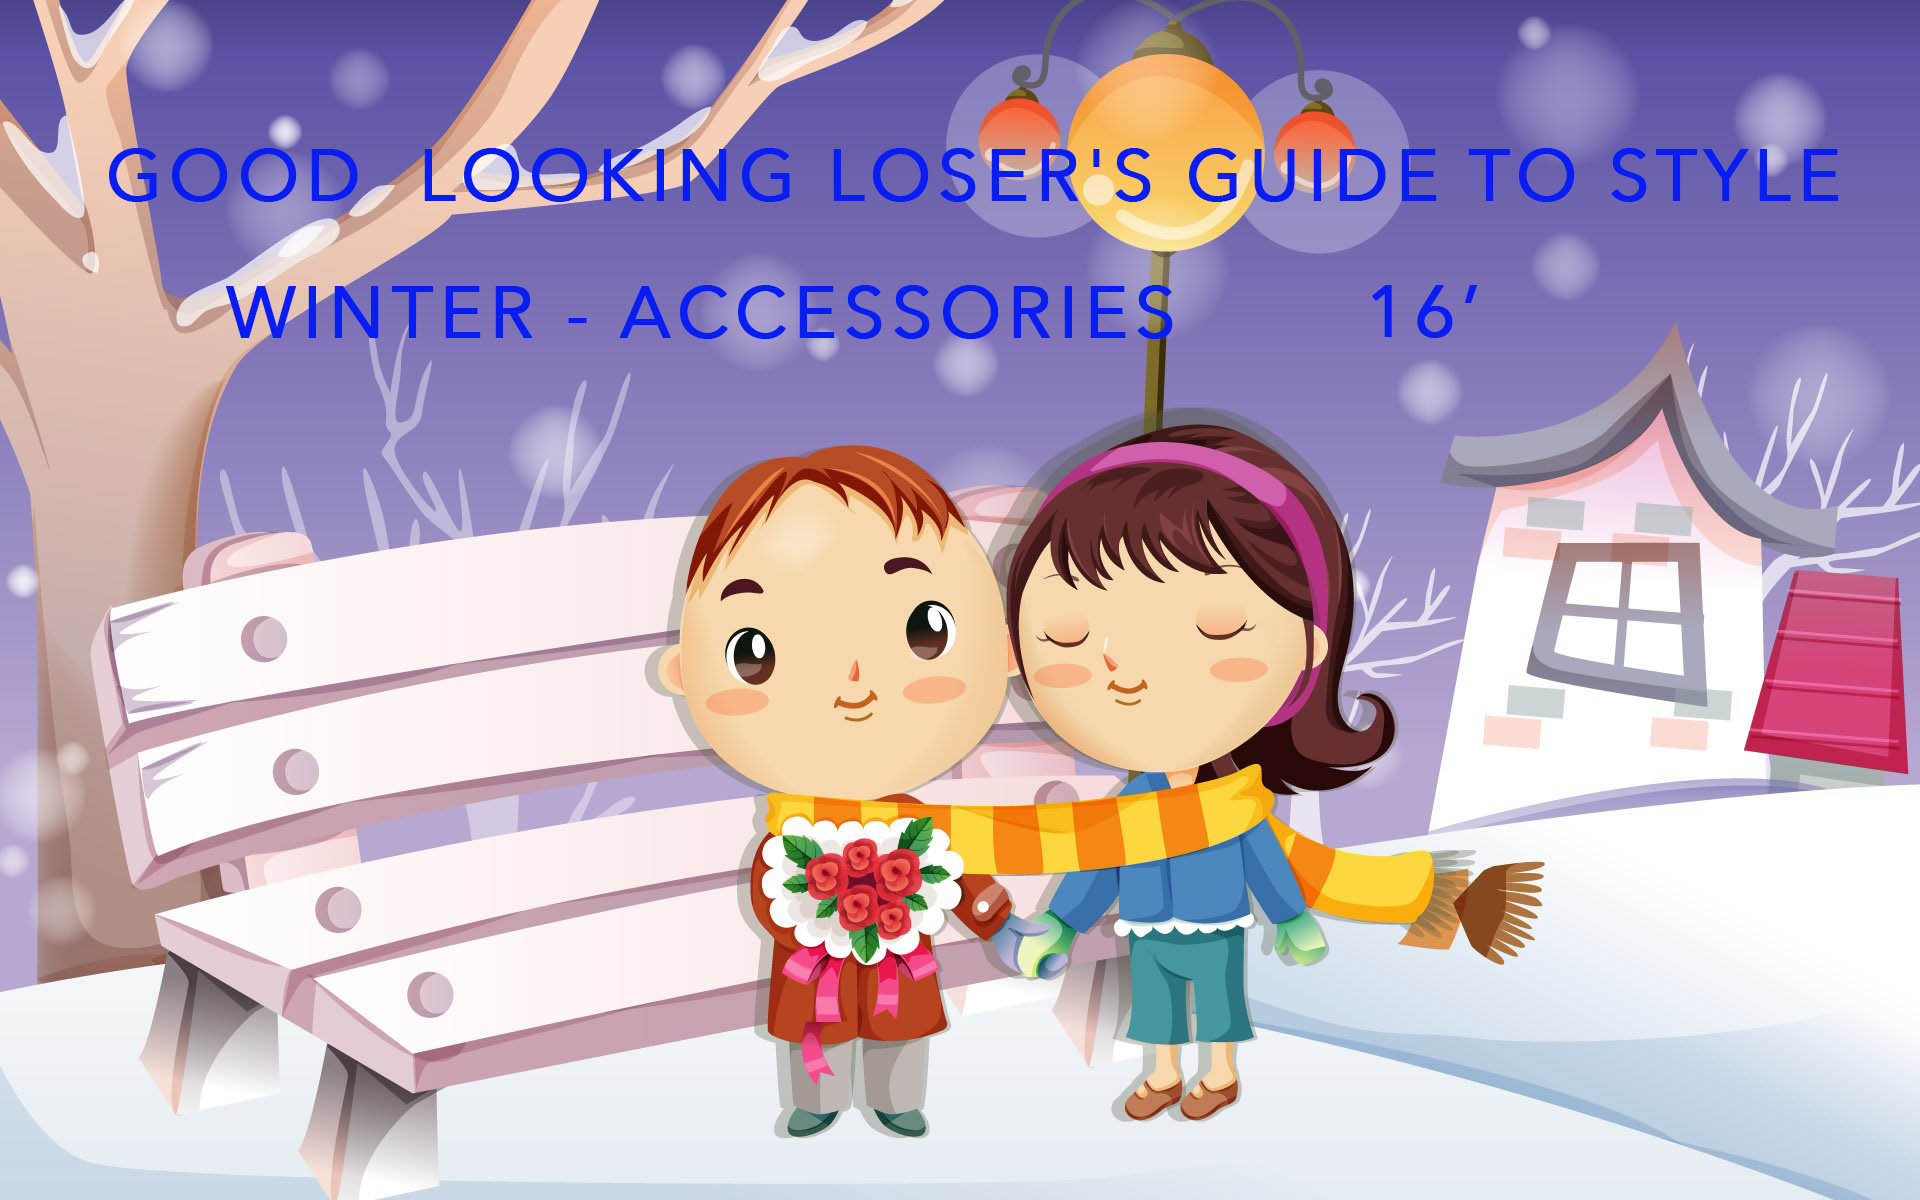 Good Looking Loser's Winter 2016 Guide to Style (Accessories)